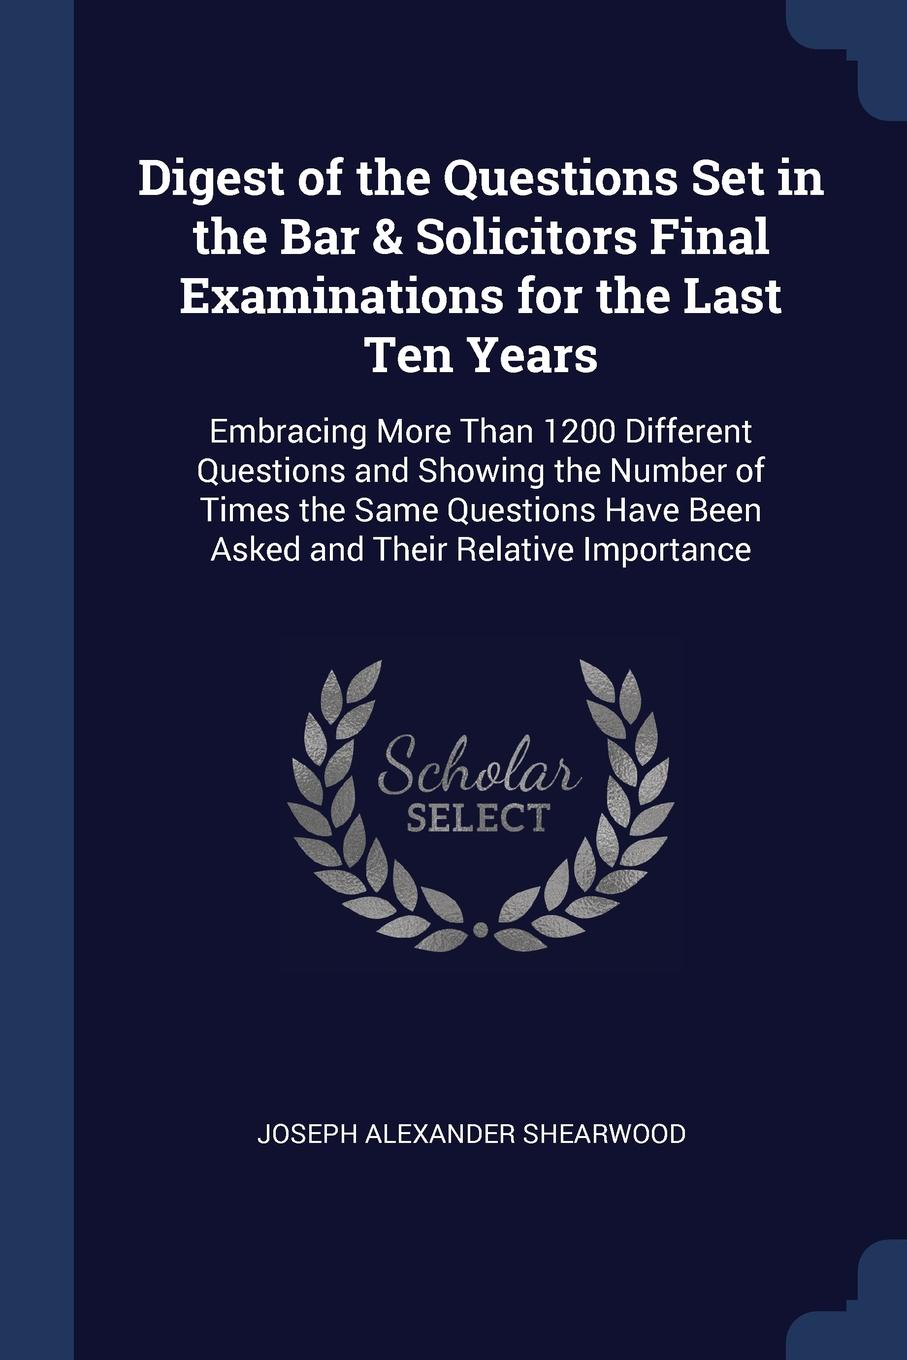 Joseph Alexander Shearwood Digest of the Questions Set in Bar . Solicitors Final Examinations for Last Ten Years. Embracing More Than 1200 Different and Showing Number Times Same Have Been Asked Their Relative Importance